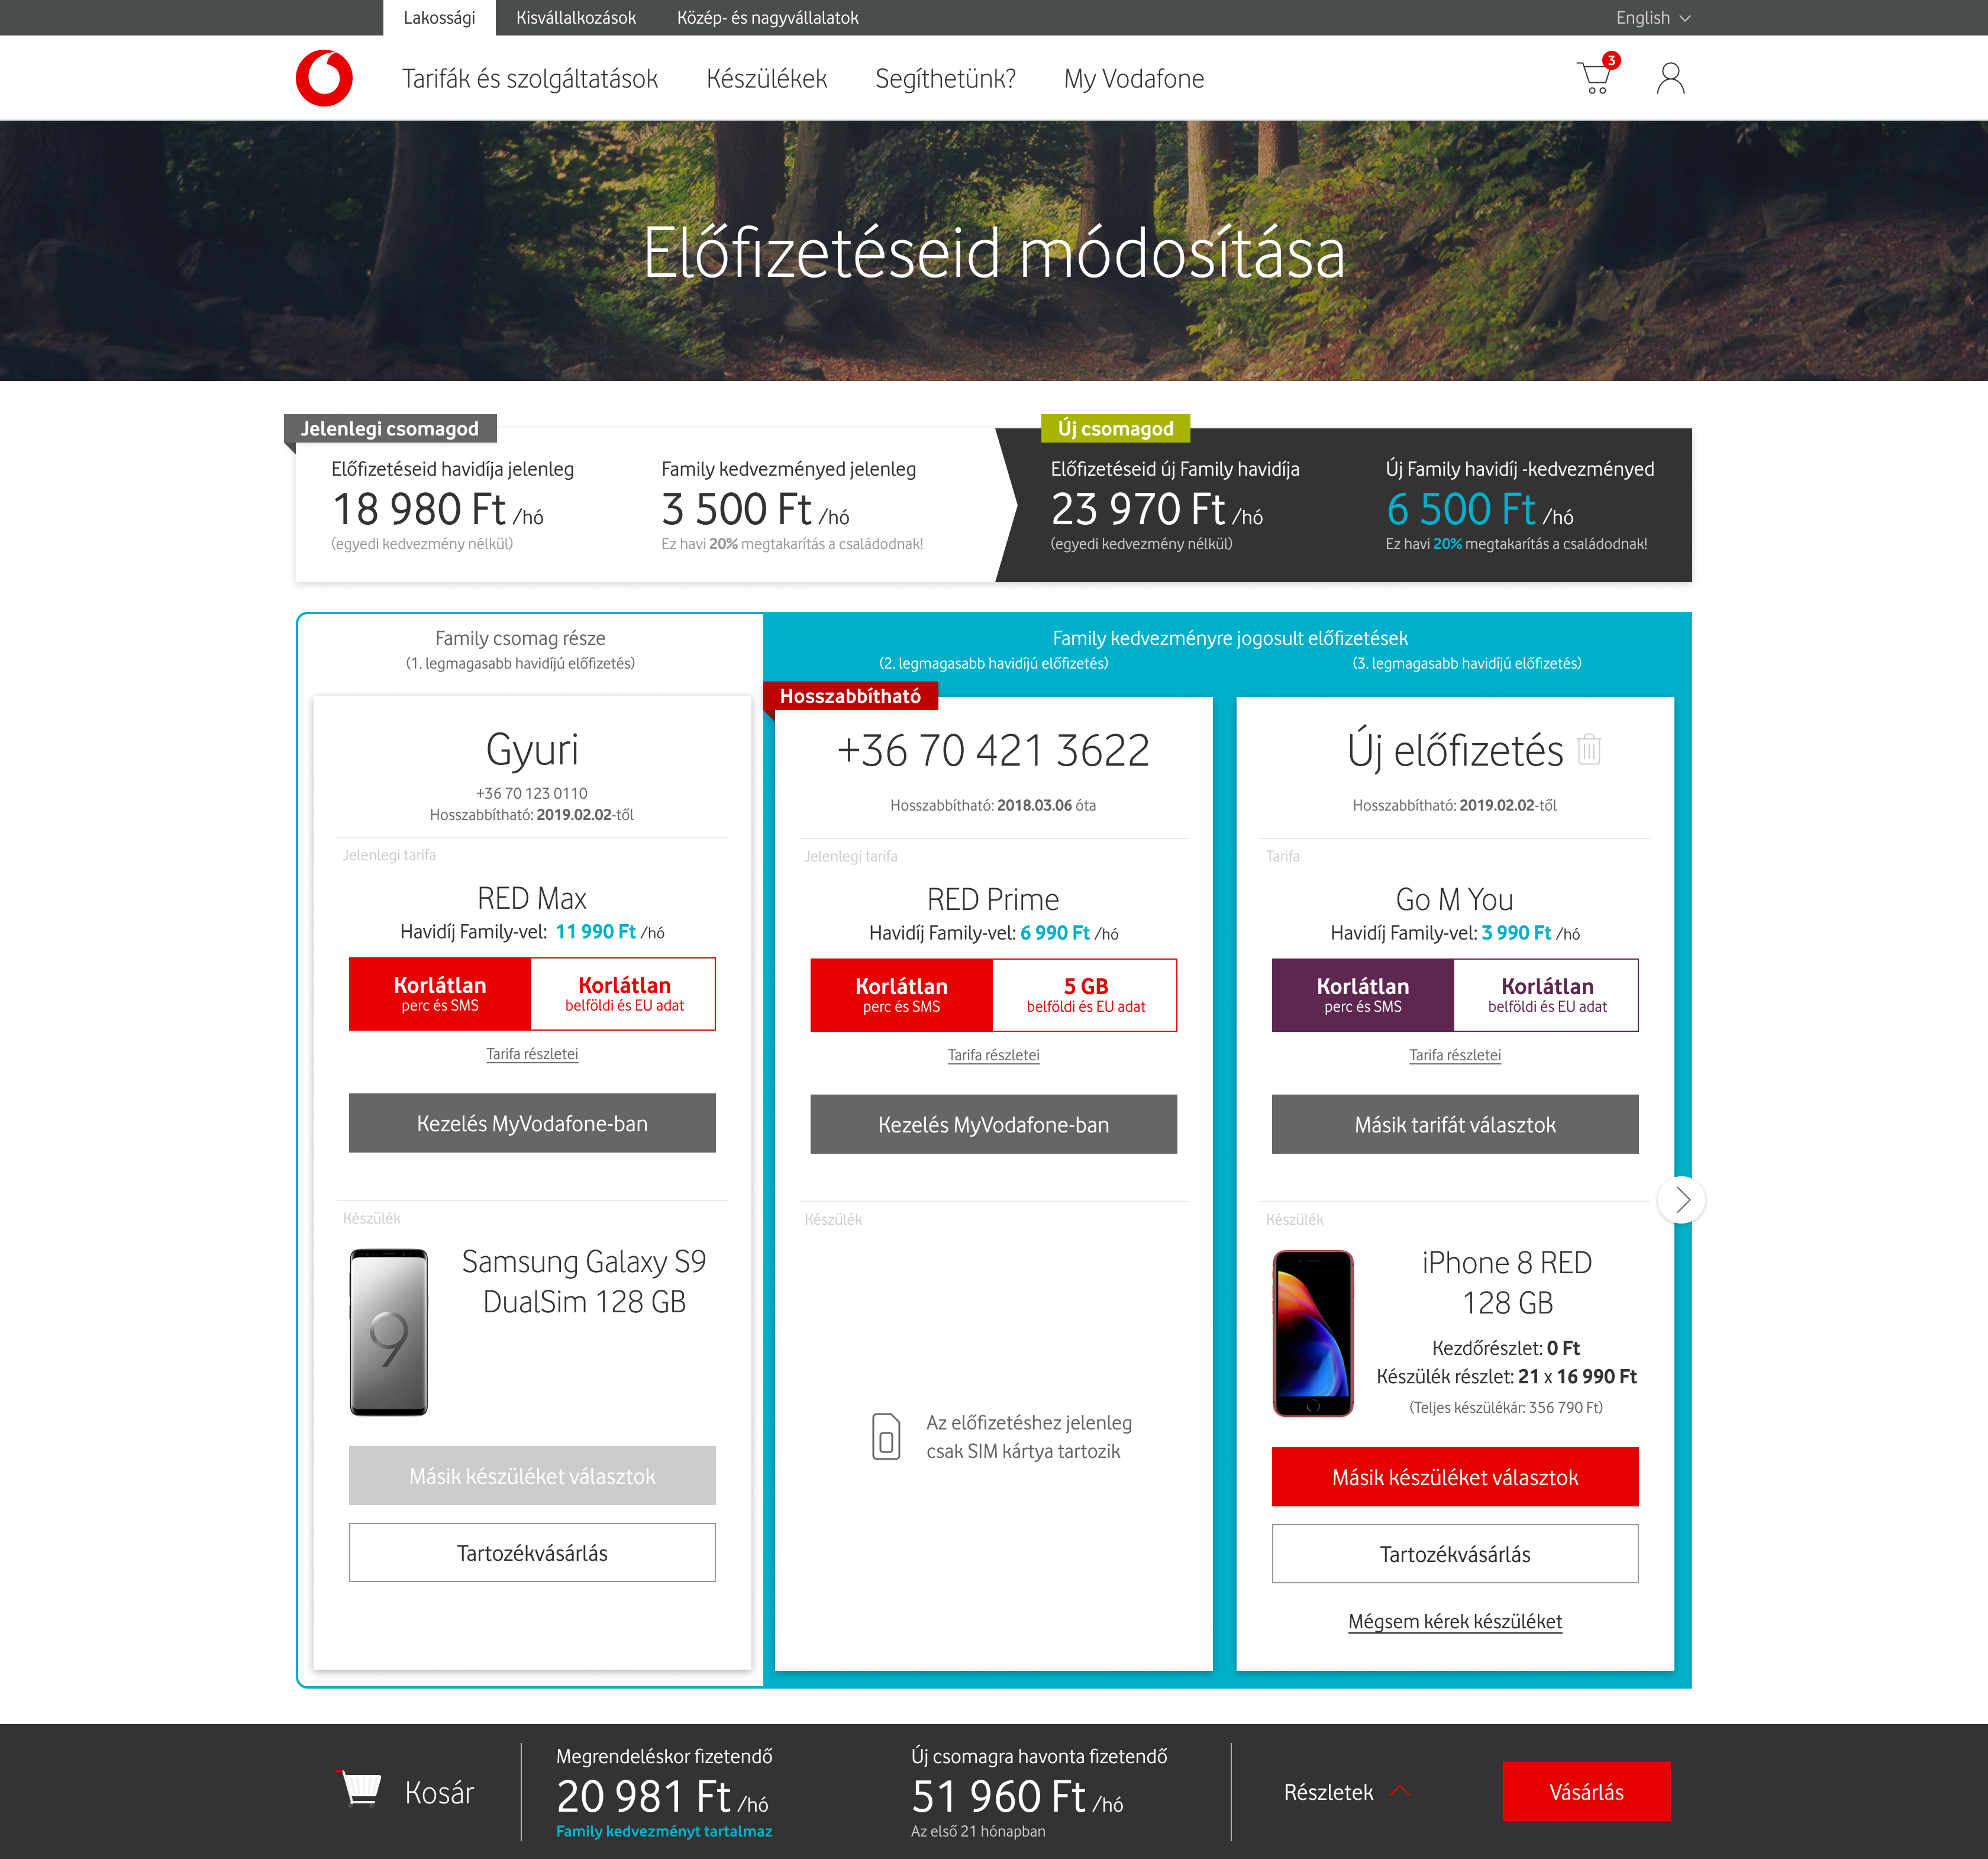 One screen of the Family bundle expansion mode of the subscription dashboard. Most buttons lead to multi-step interaction loops, since the checkout step next has to be started from here legally.The black summary bar is a floating element at the bottom of the viewport